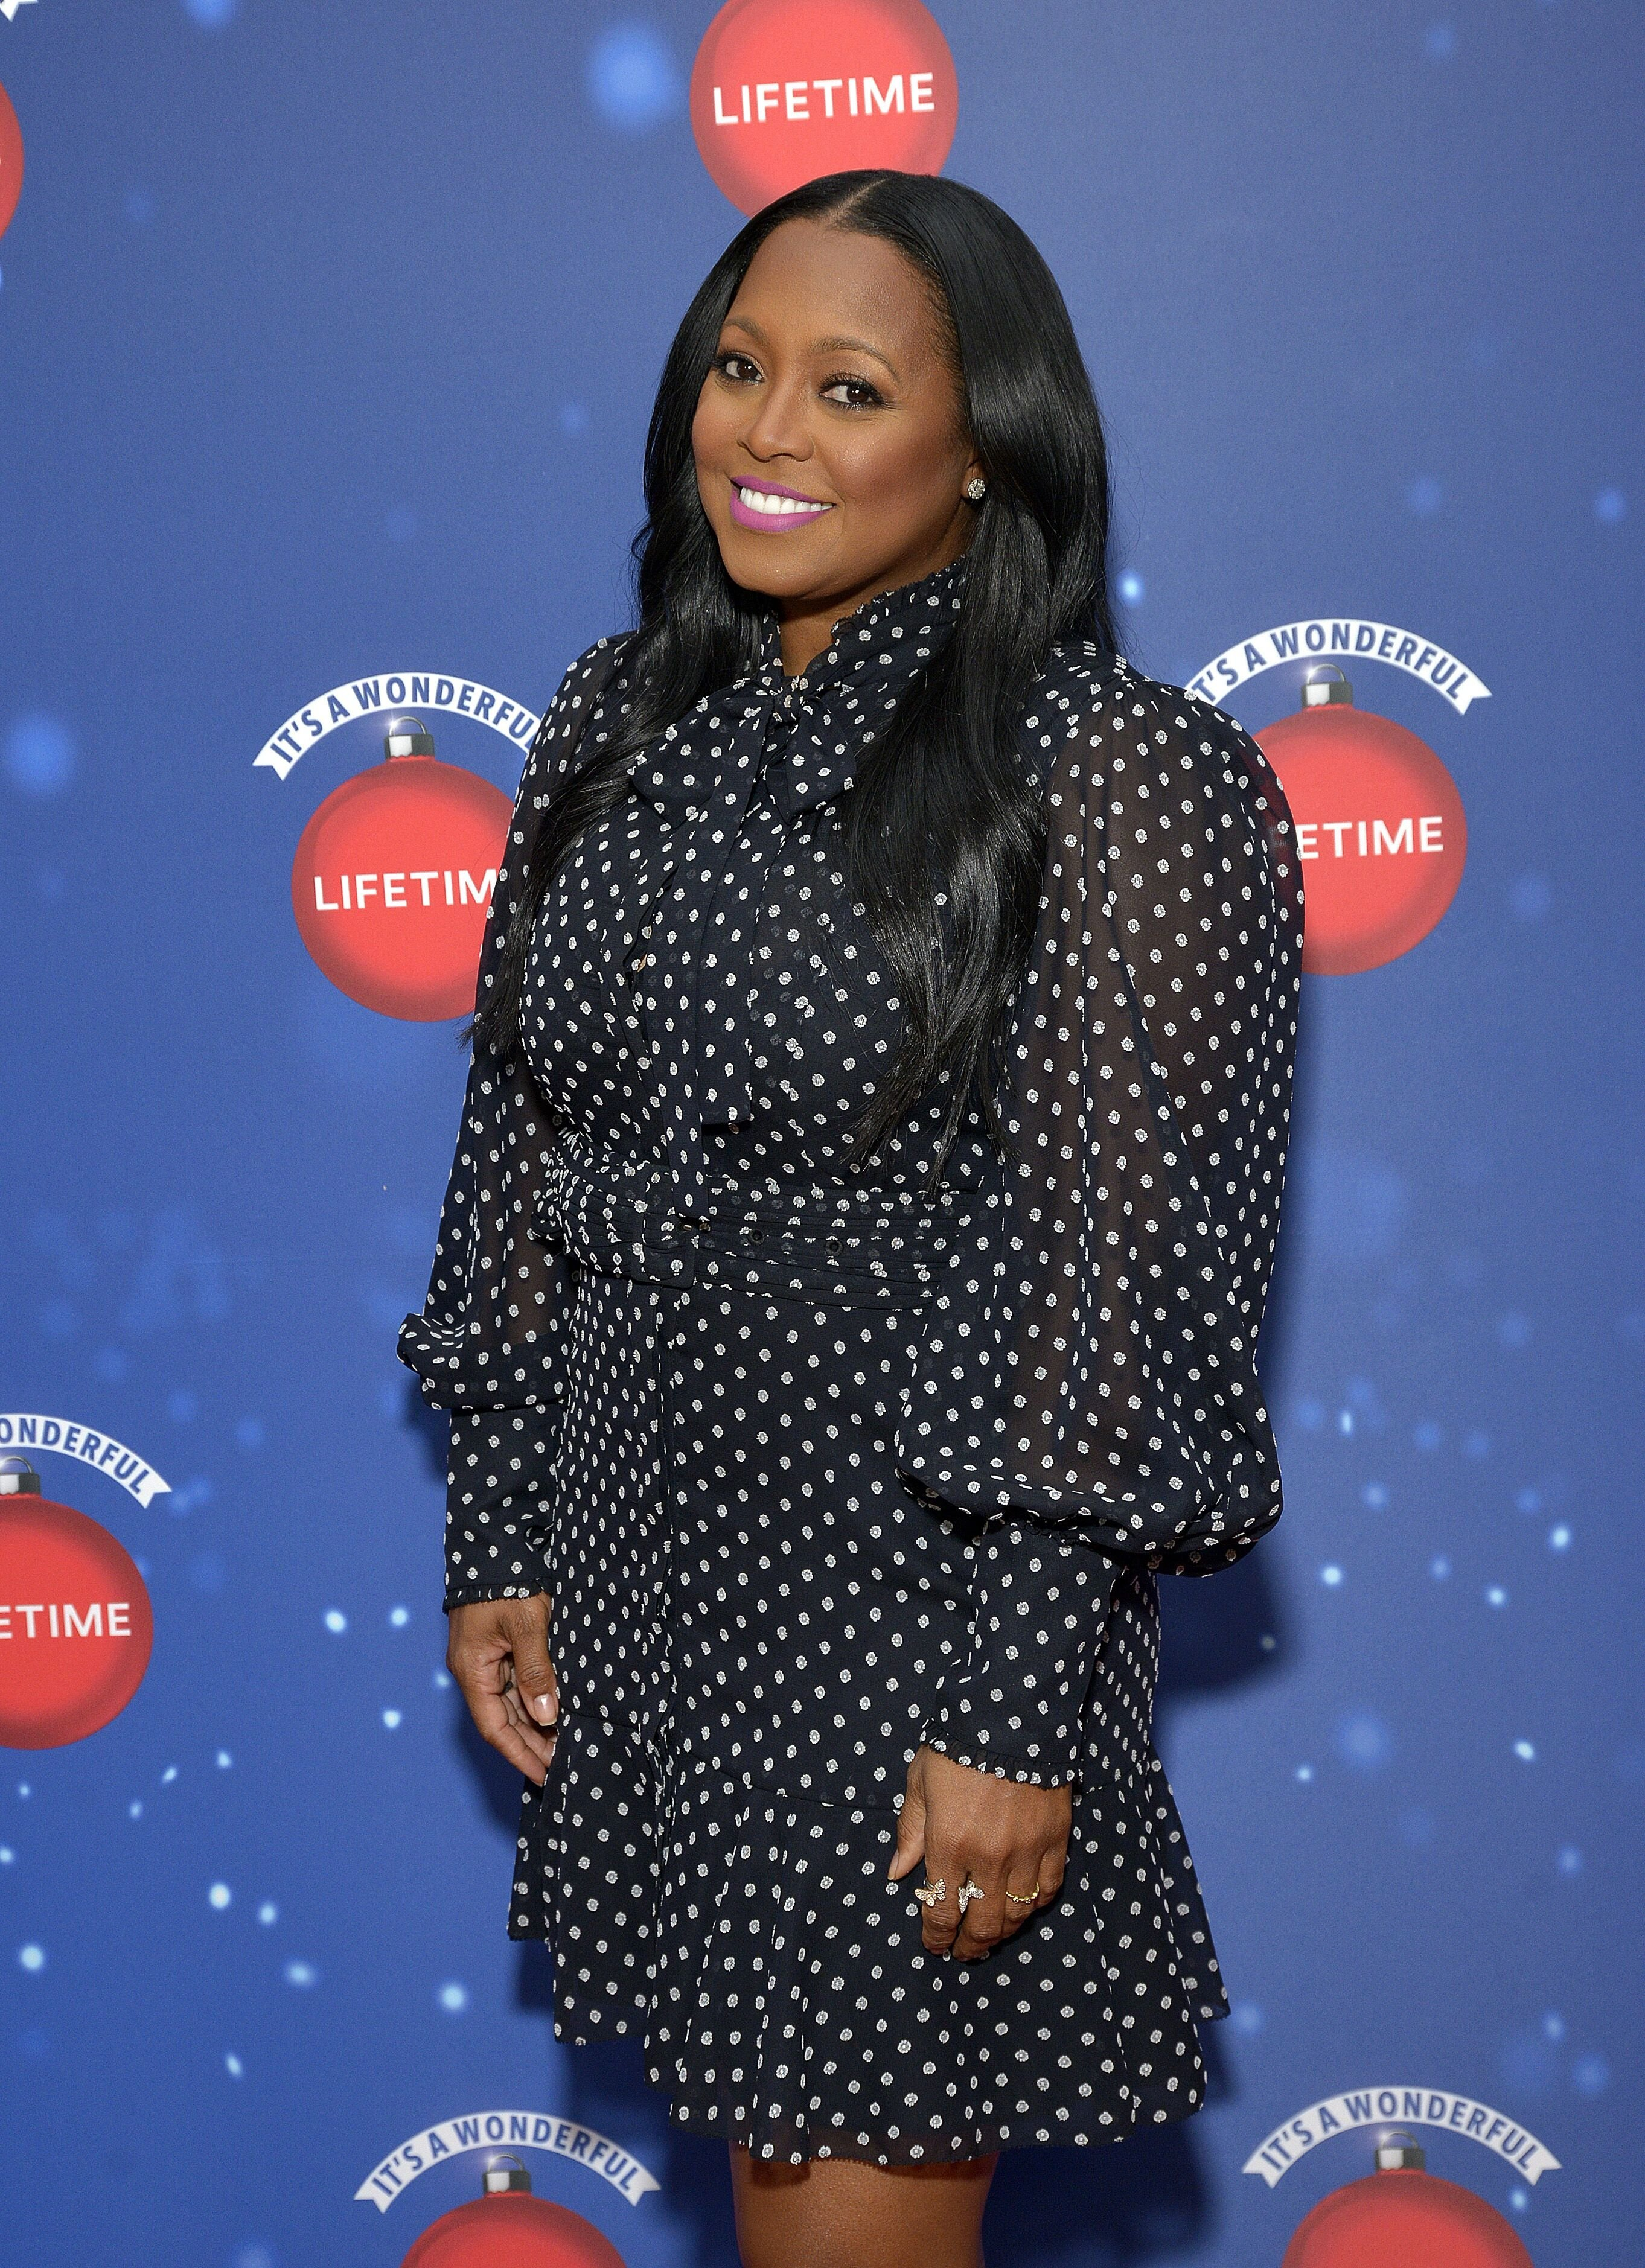 Keshia Knight Pulliam gracing a Christmas event for Lifetime Network. | Photo: Getty Images